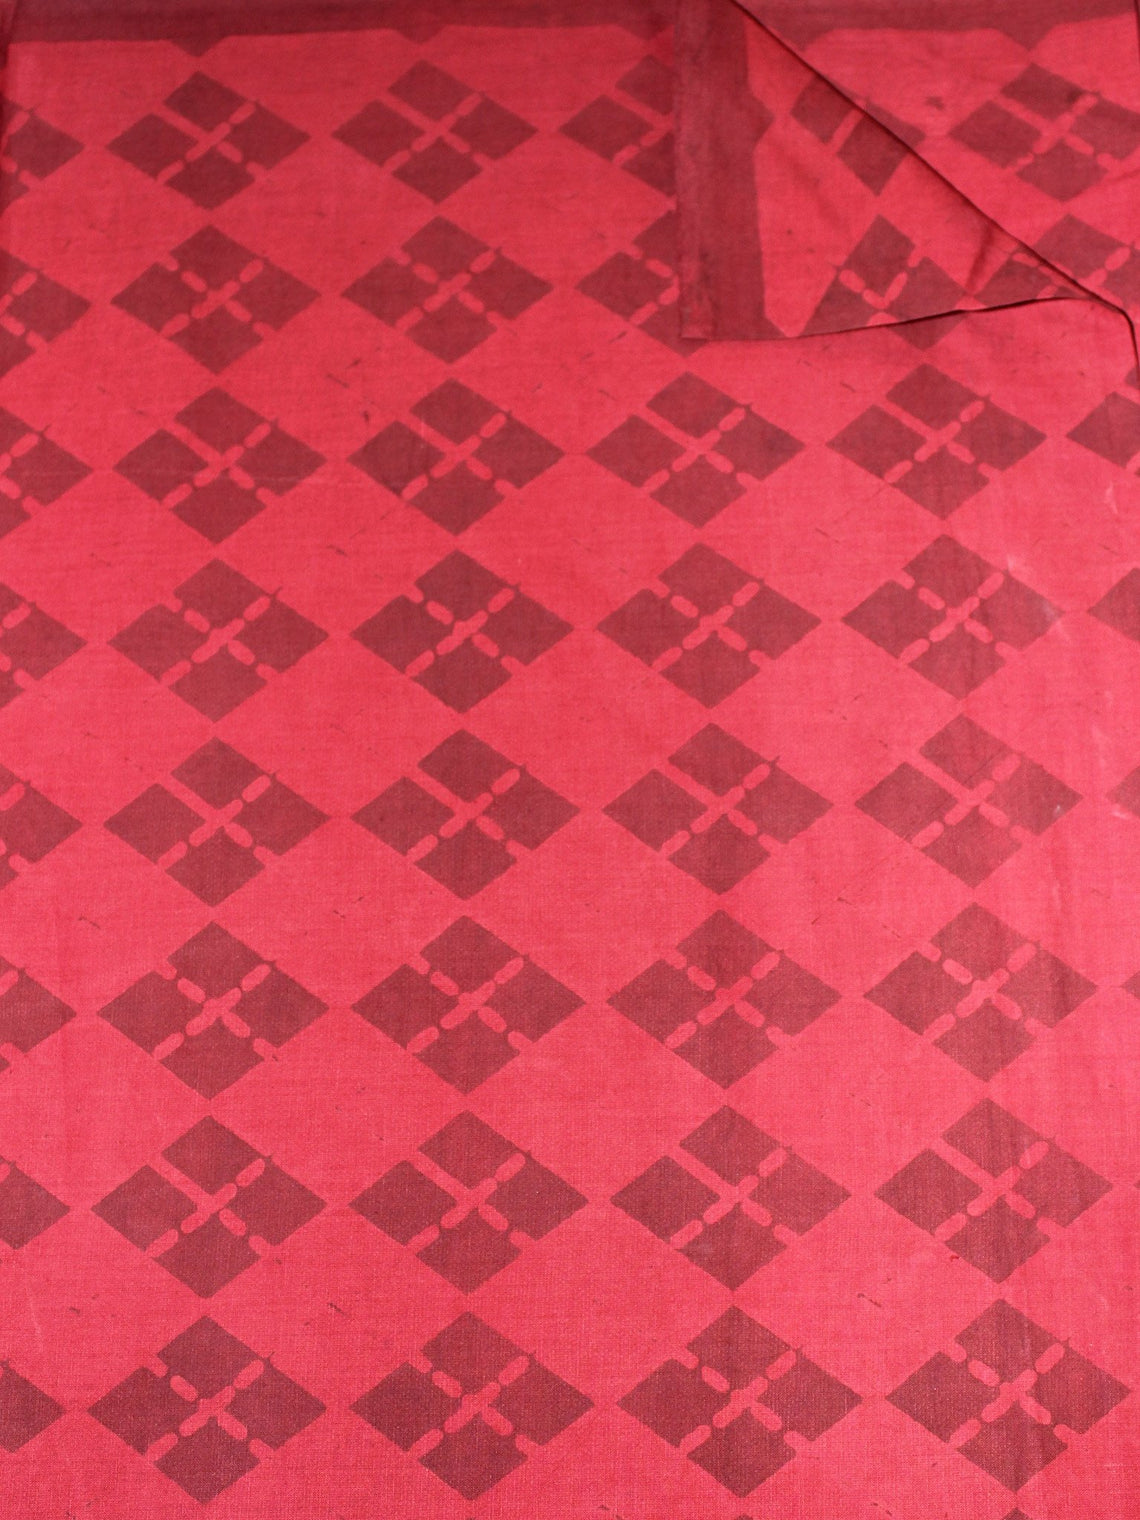 Light Red Maroon Hand Block Printed Cotton Cambric Fabric Per Meter - F0916461